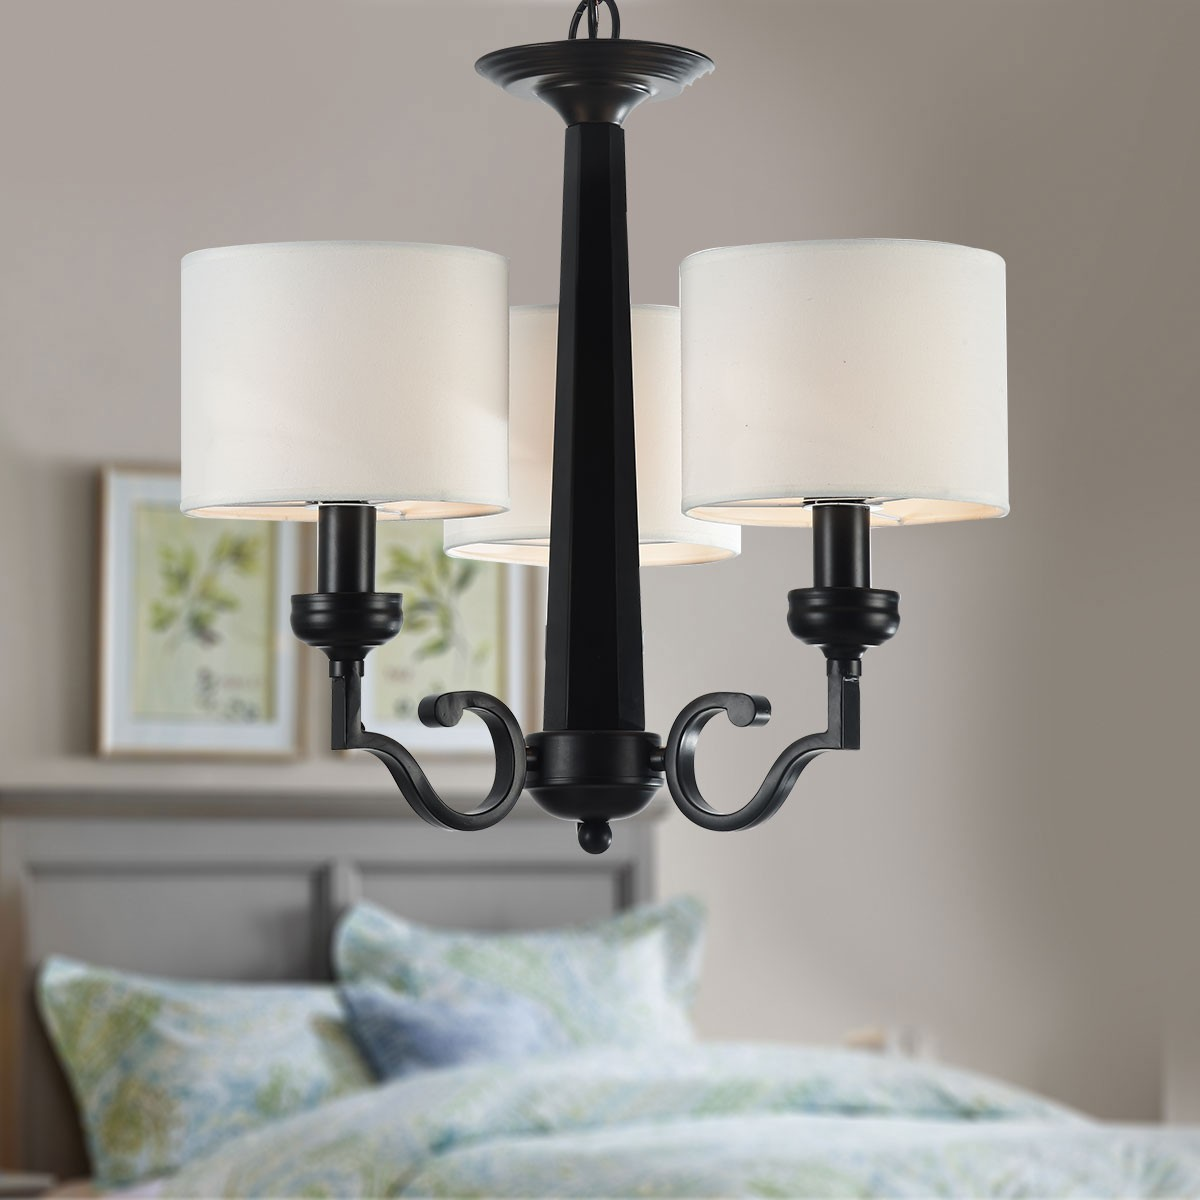 3-Light Black Wrought Iron Chandelier with Cloth Shades (DK-2017-3)